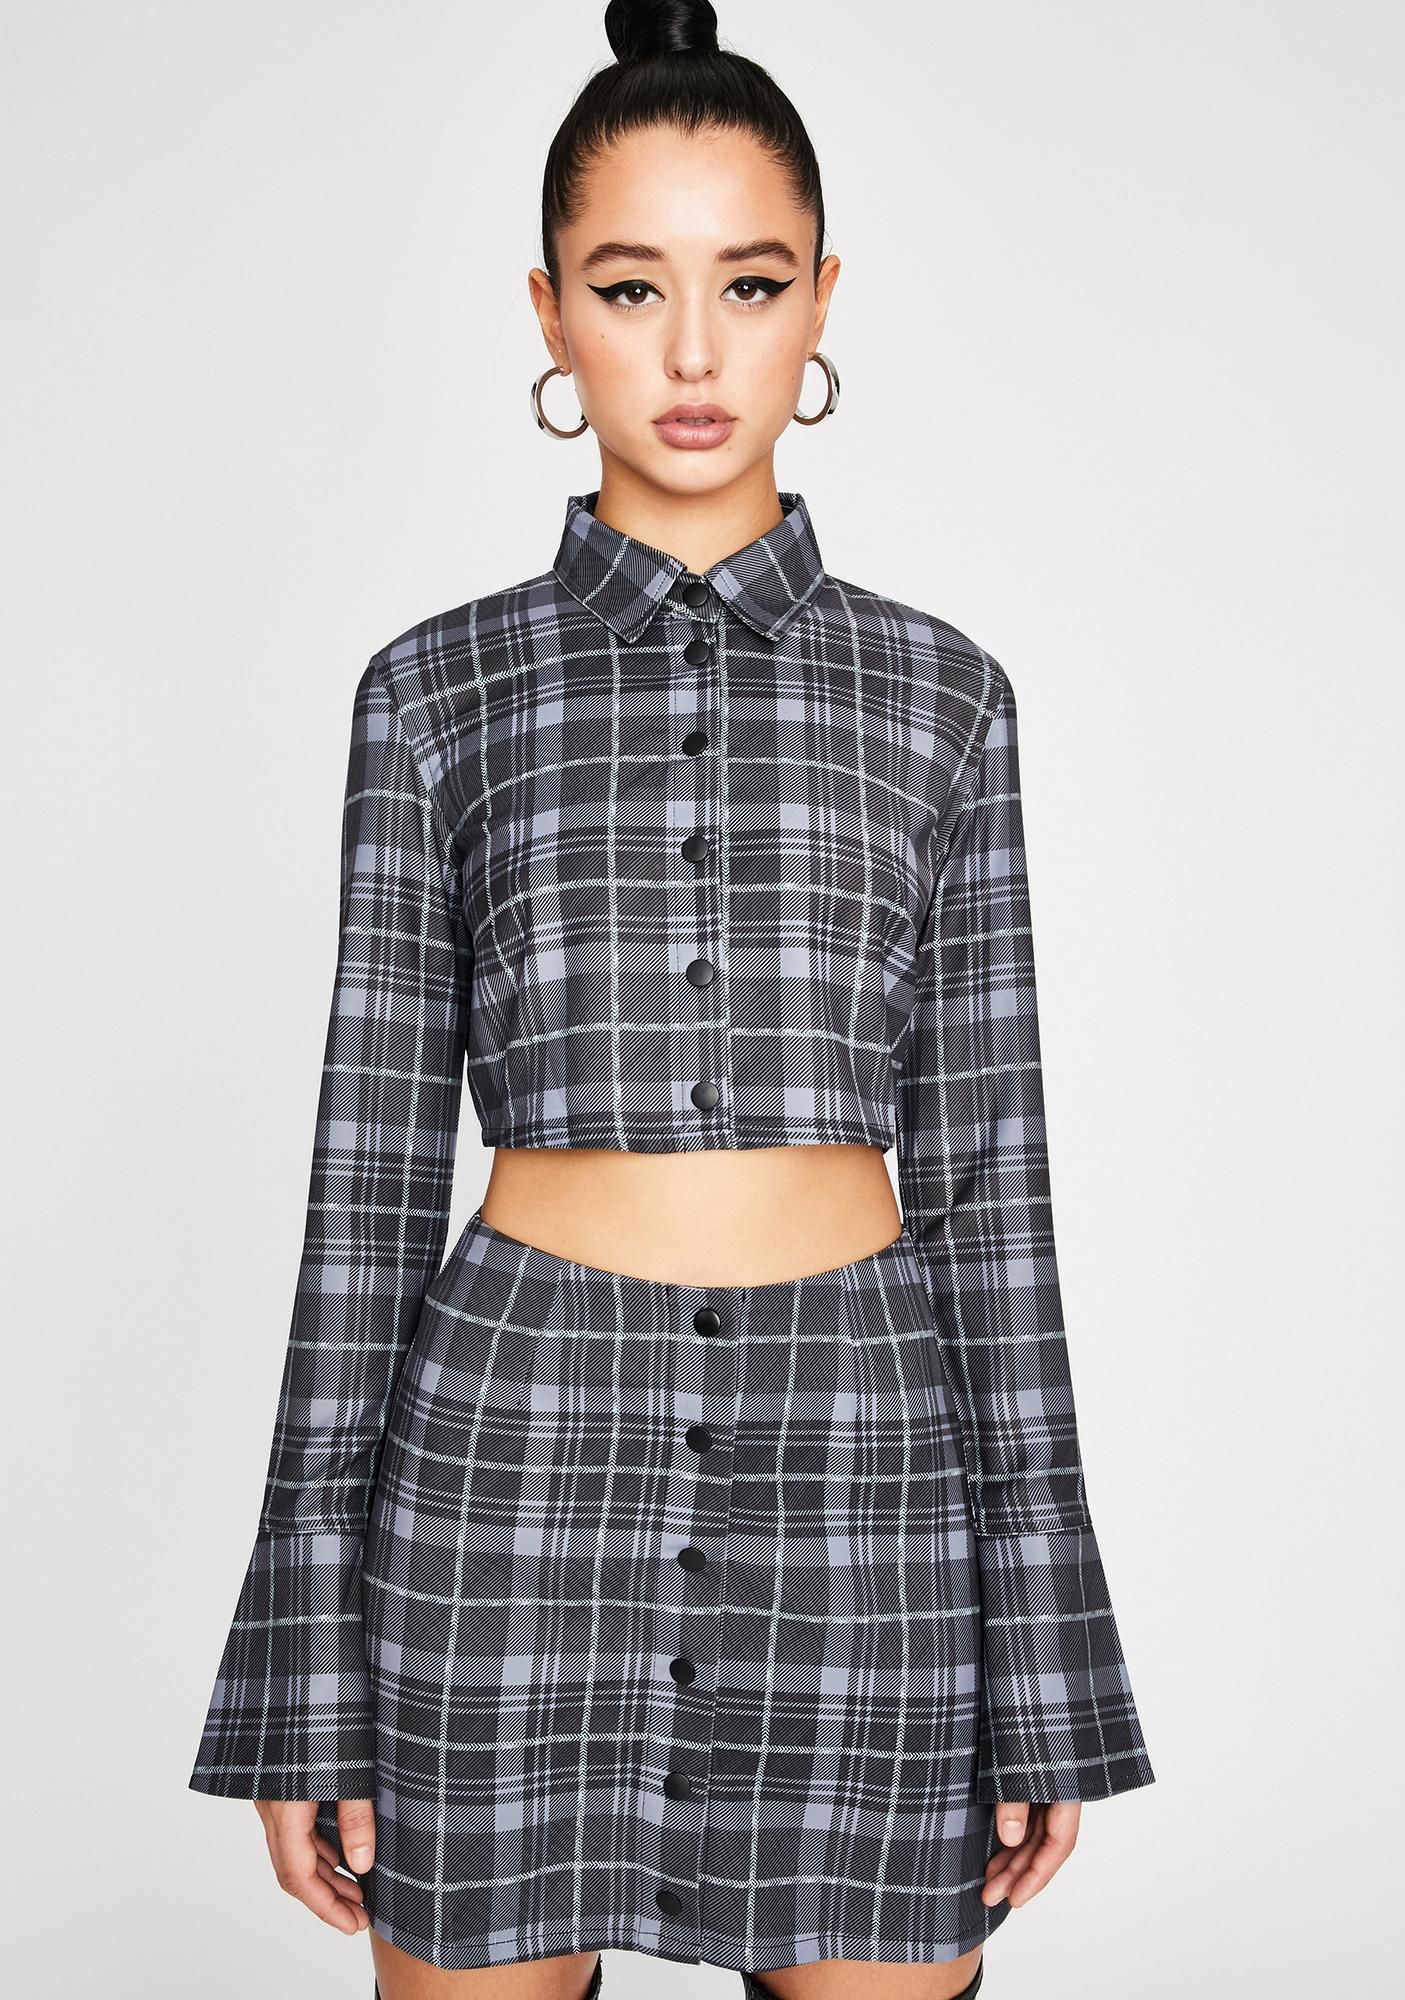 Poster Grl Back In Session Plaid Crop Top